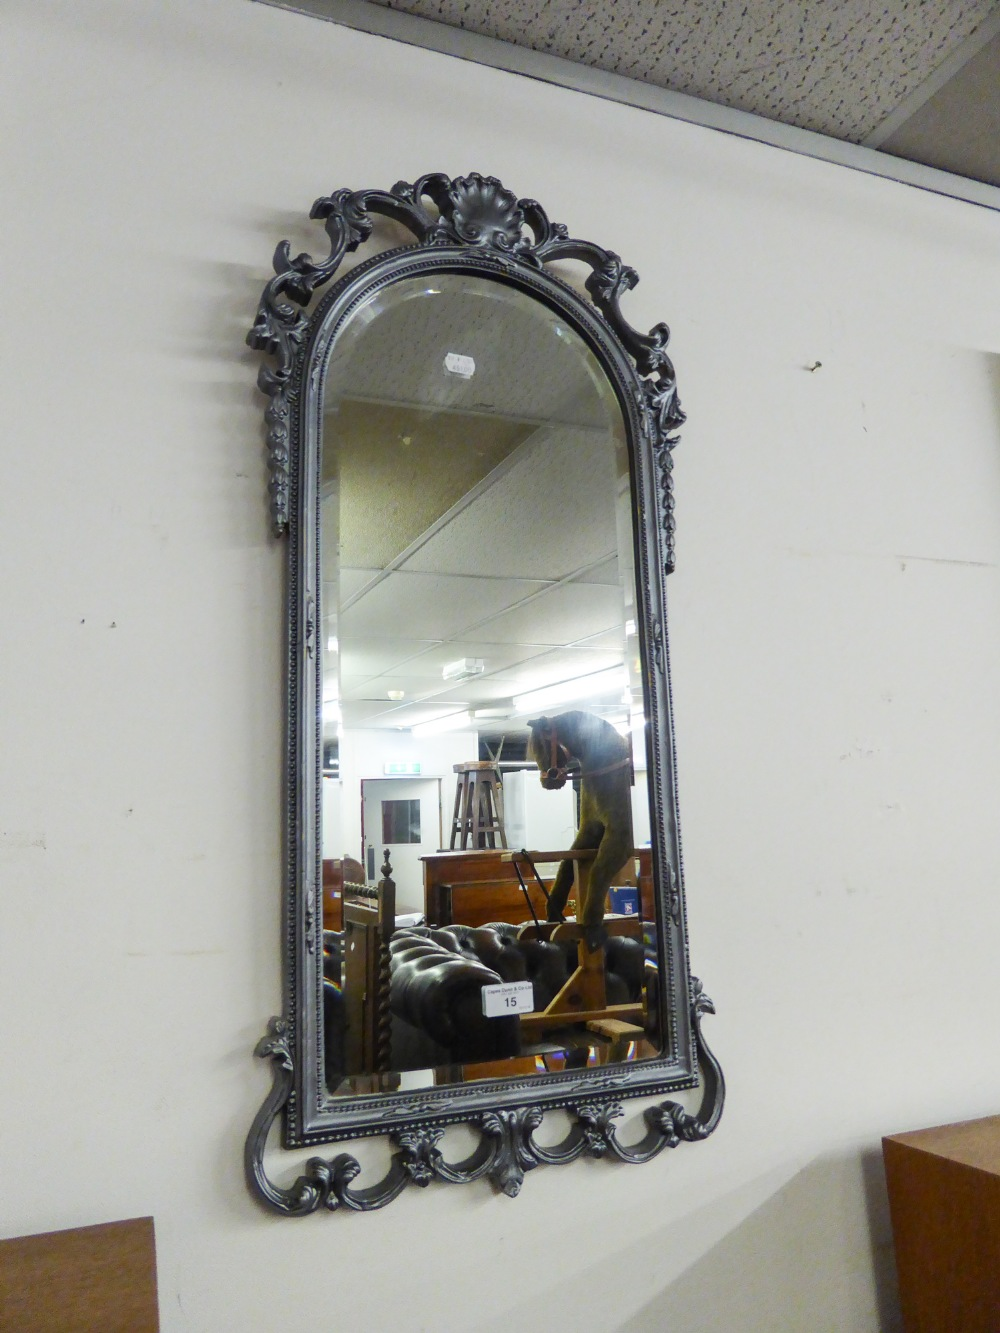 Lot 15 - AN ARCHED TOPPED BEVELLED EDGE WALL MIRROR, IN SILVERED FINISH FRAME